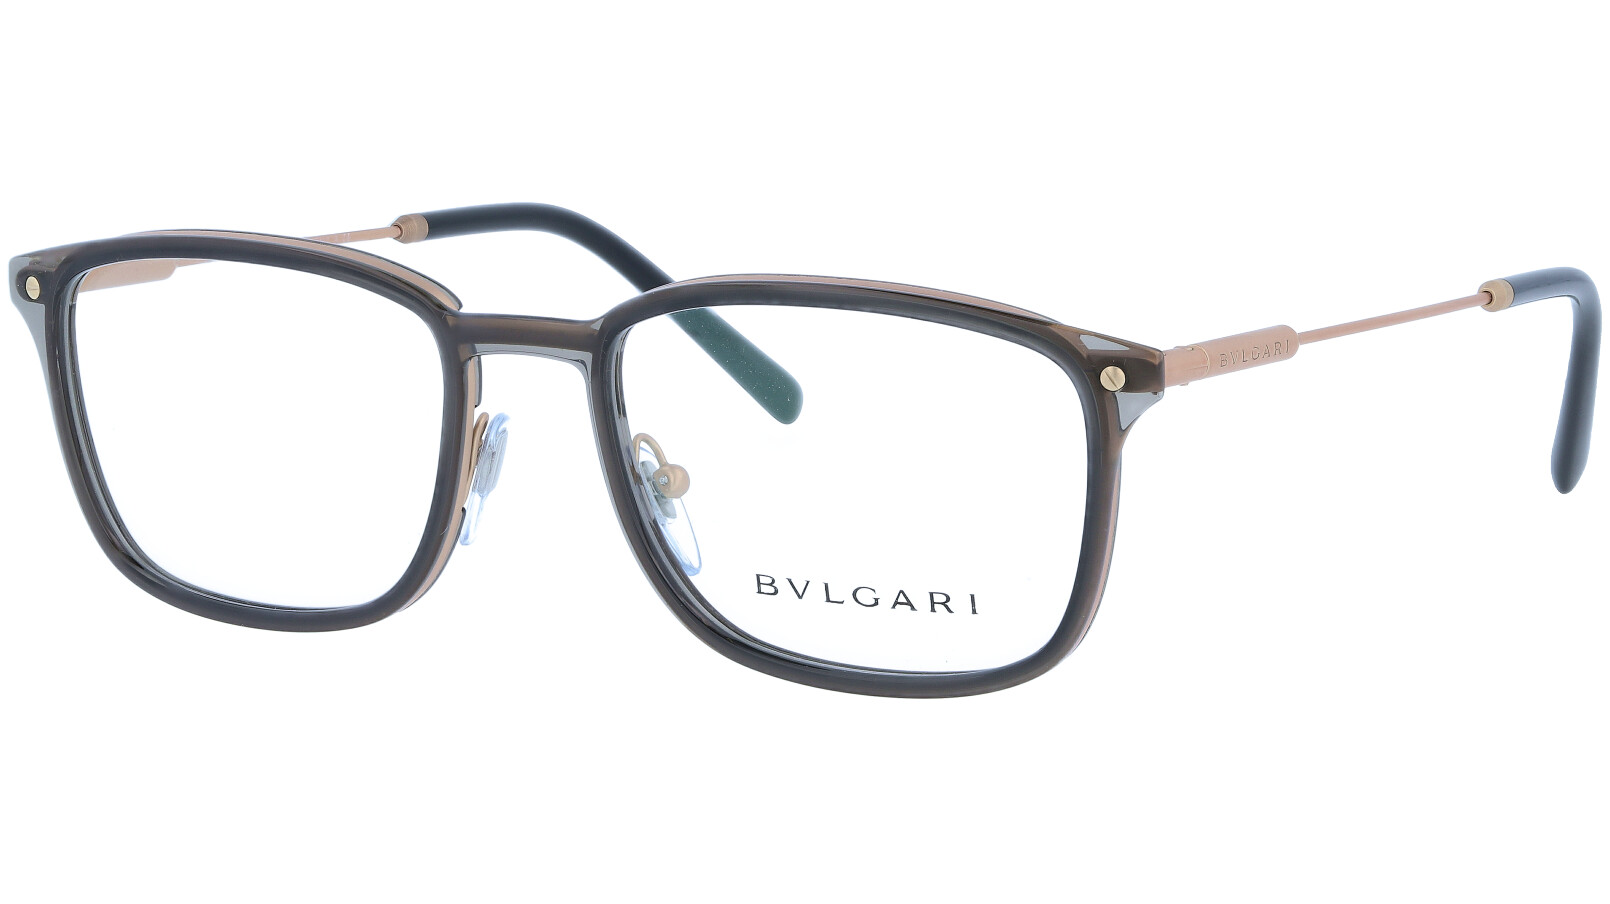 BVLGARI BV1101 2013 54 BLACK Glasses